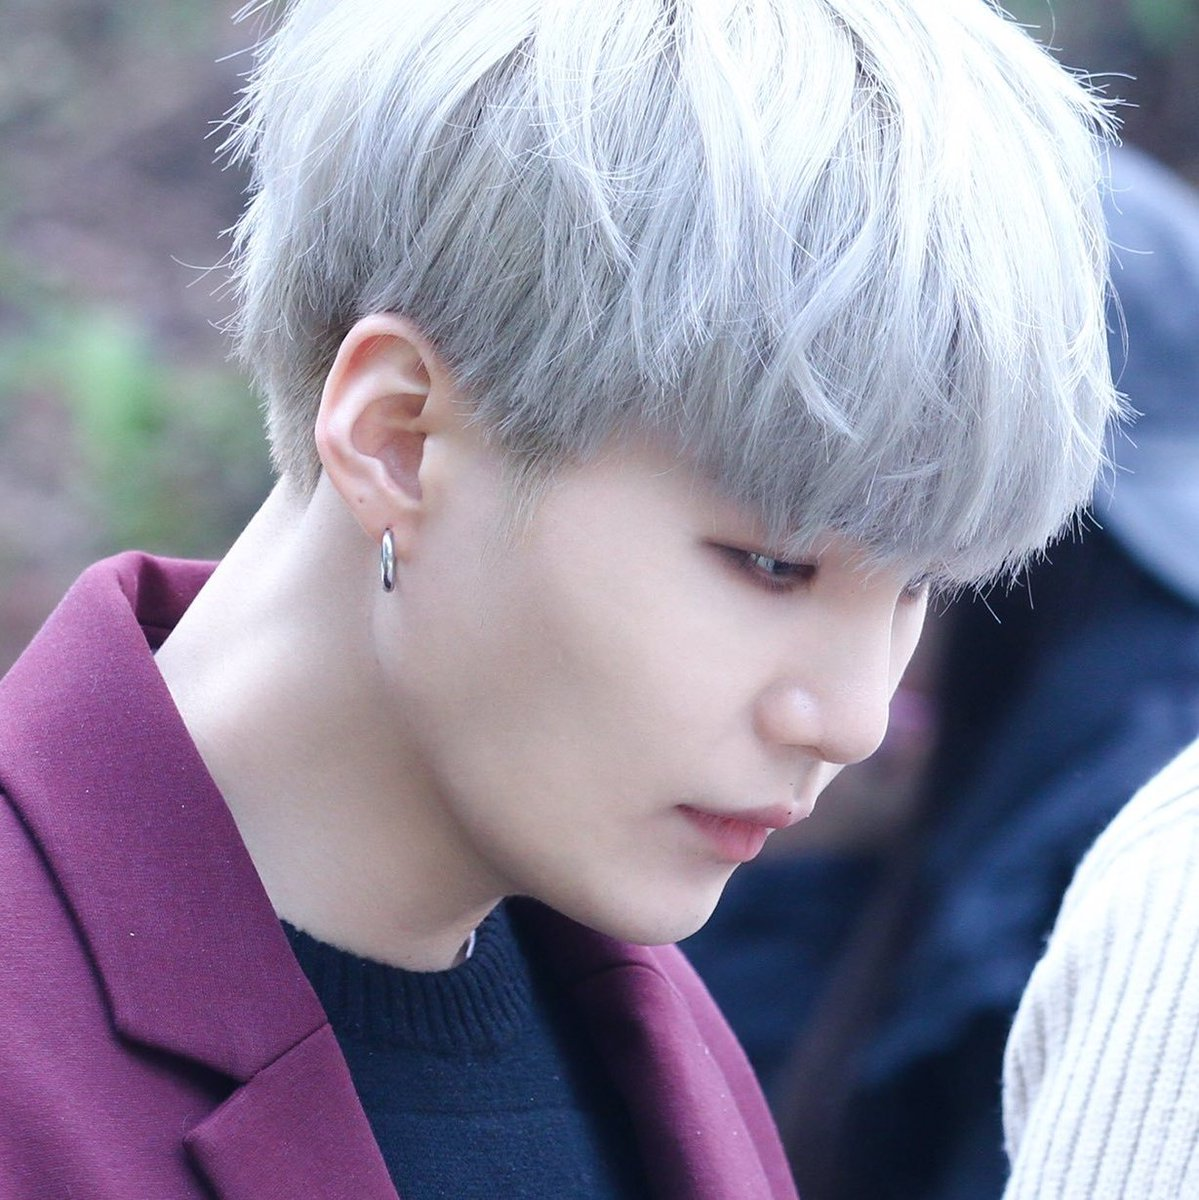 Tiffany On Twitter Yoongi Looks Really Good With Silver Hair Tho